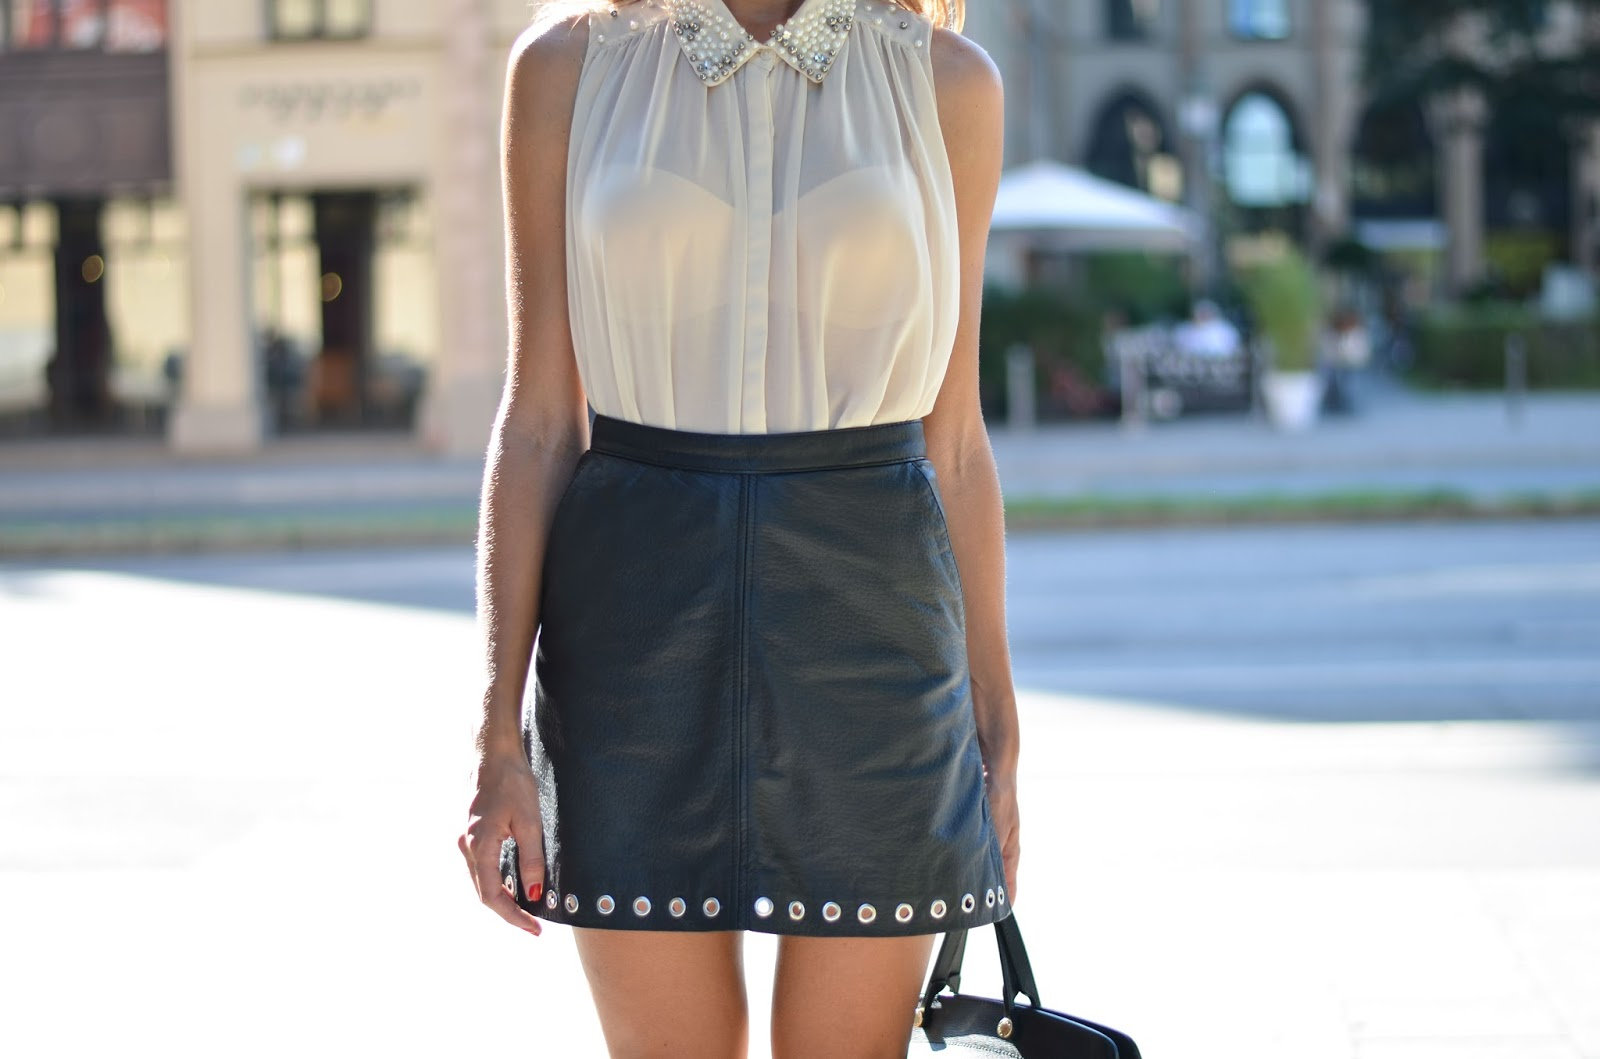 kristjaana mere nude sleeveless top leather mini skirt fall 2015 trend outfit